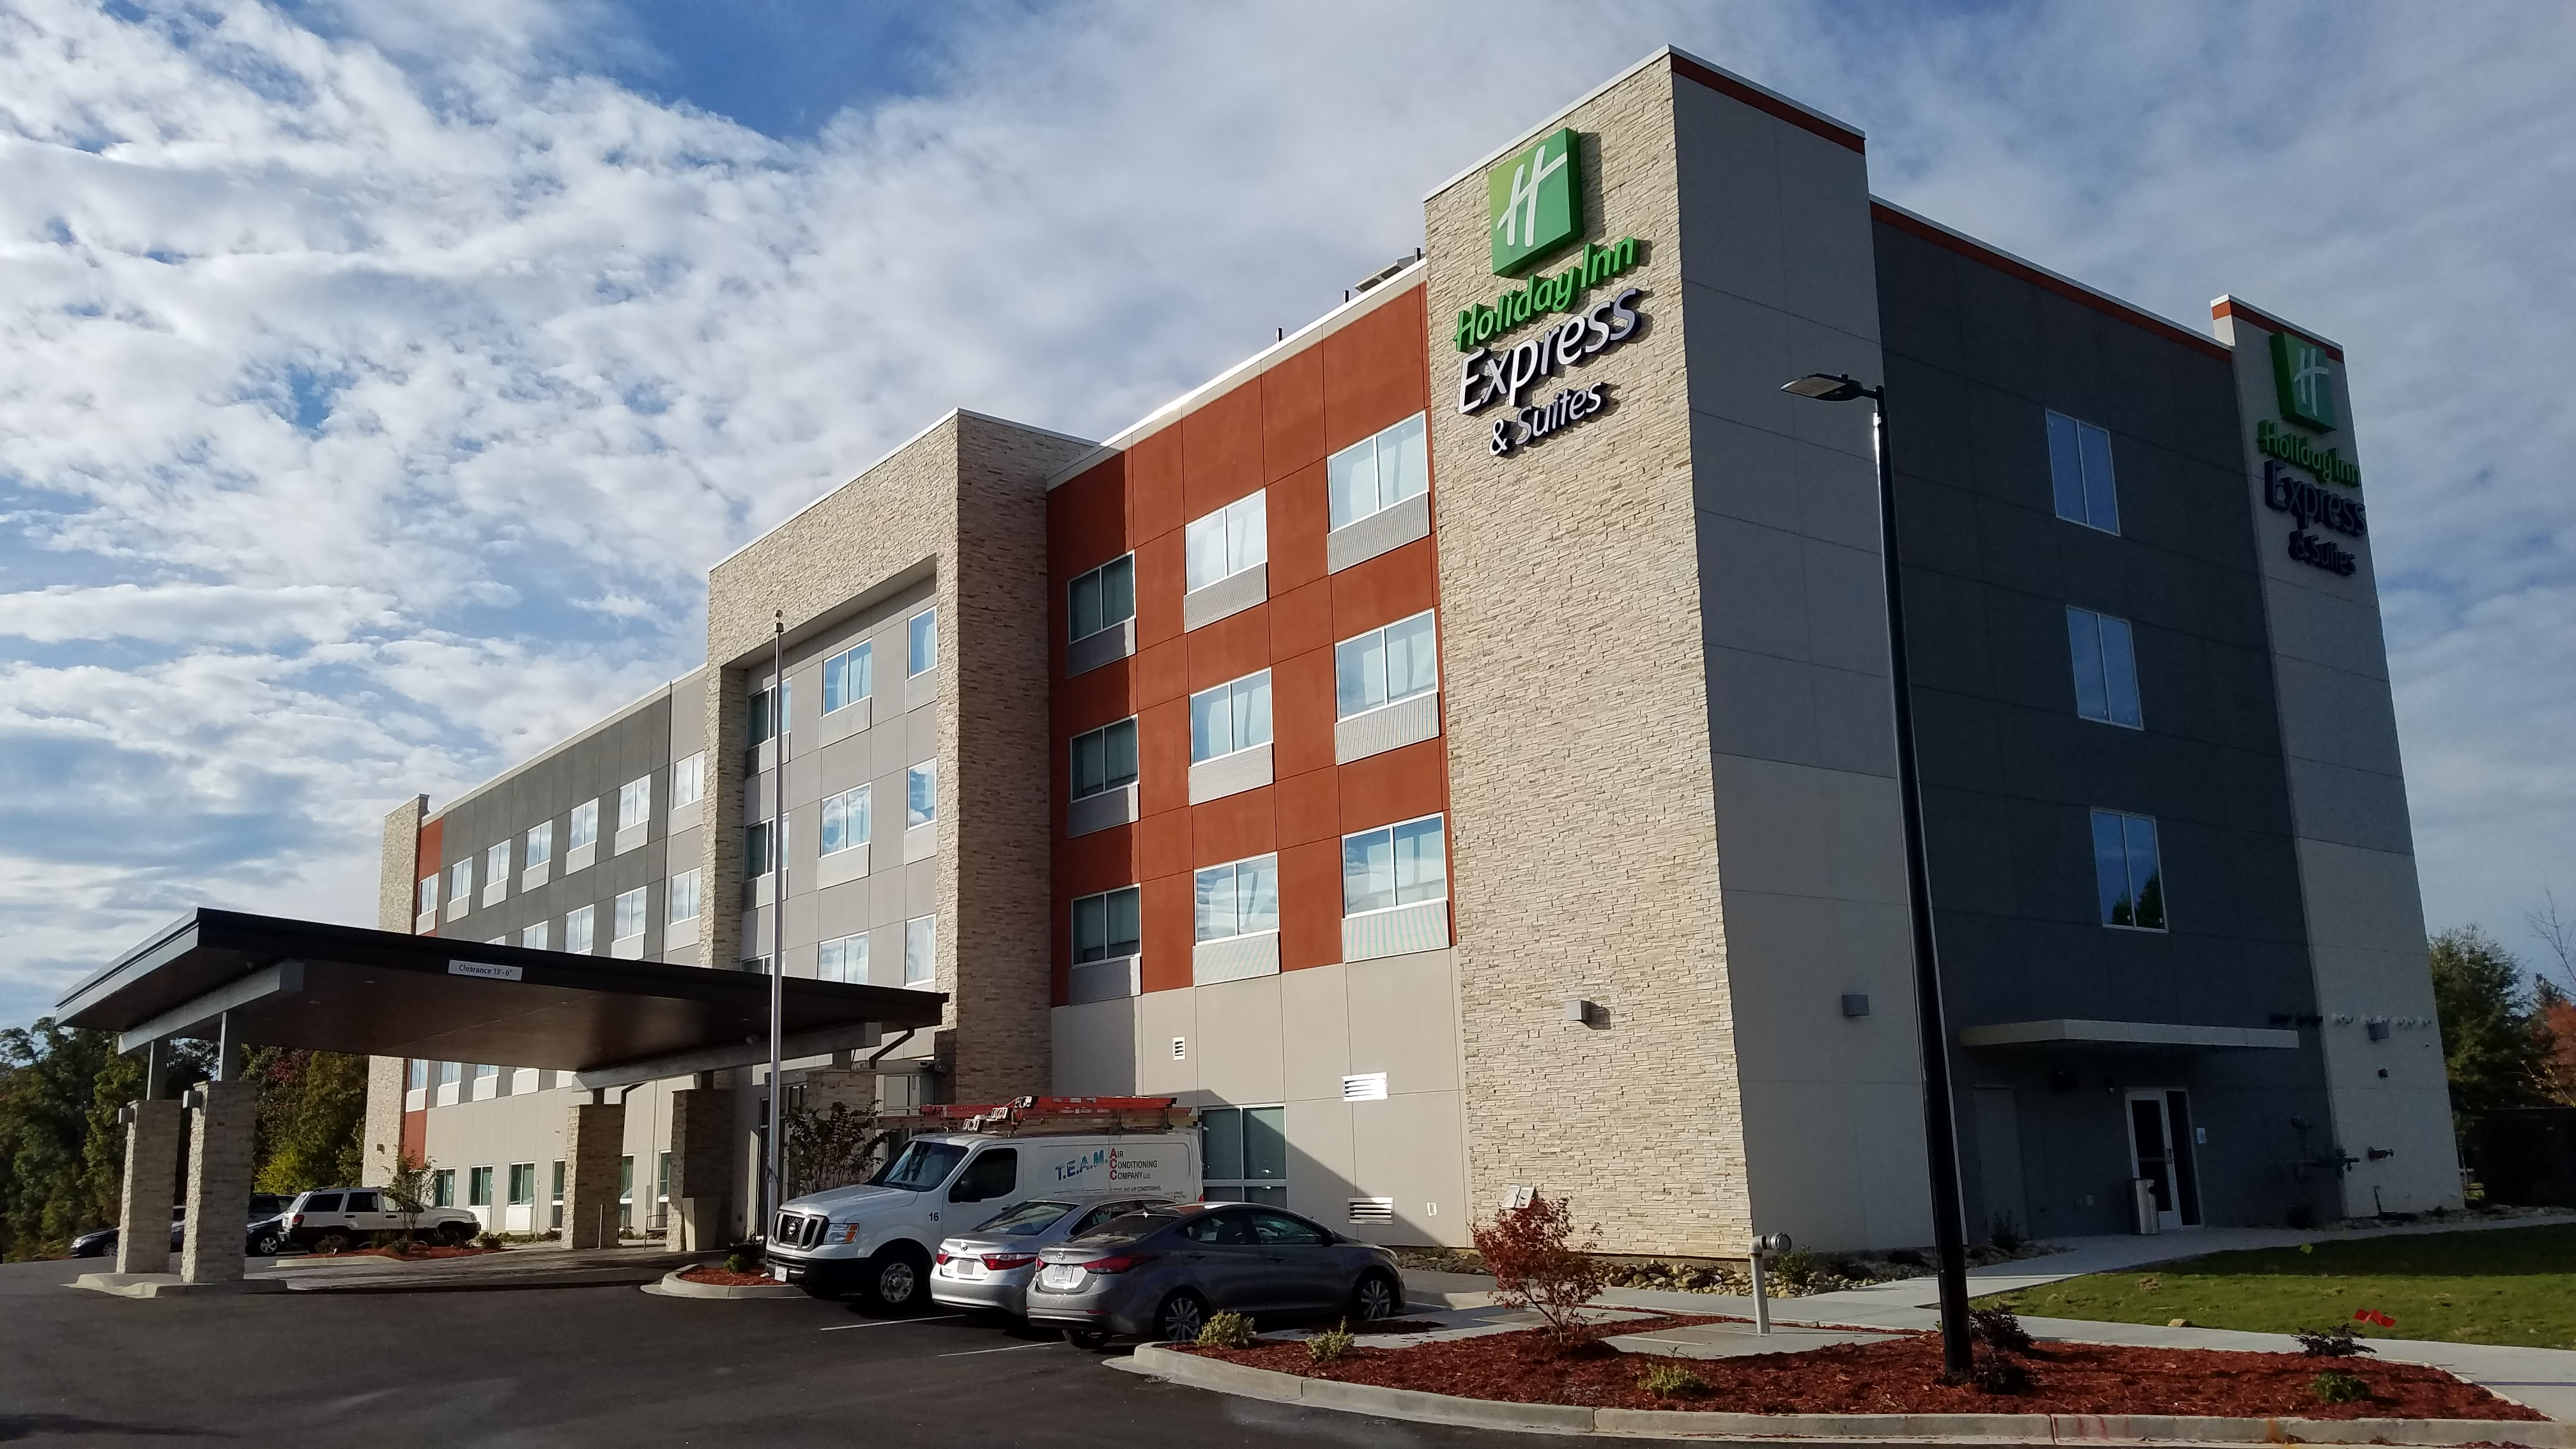 Holiday Inn Exp Stes Simpsonville